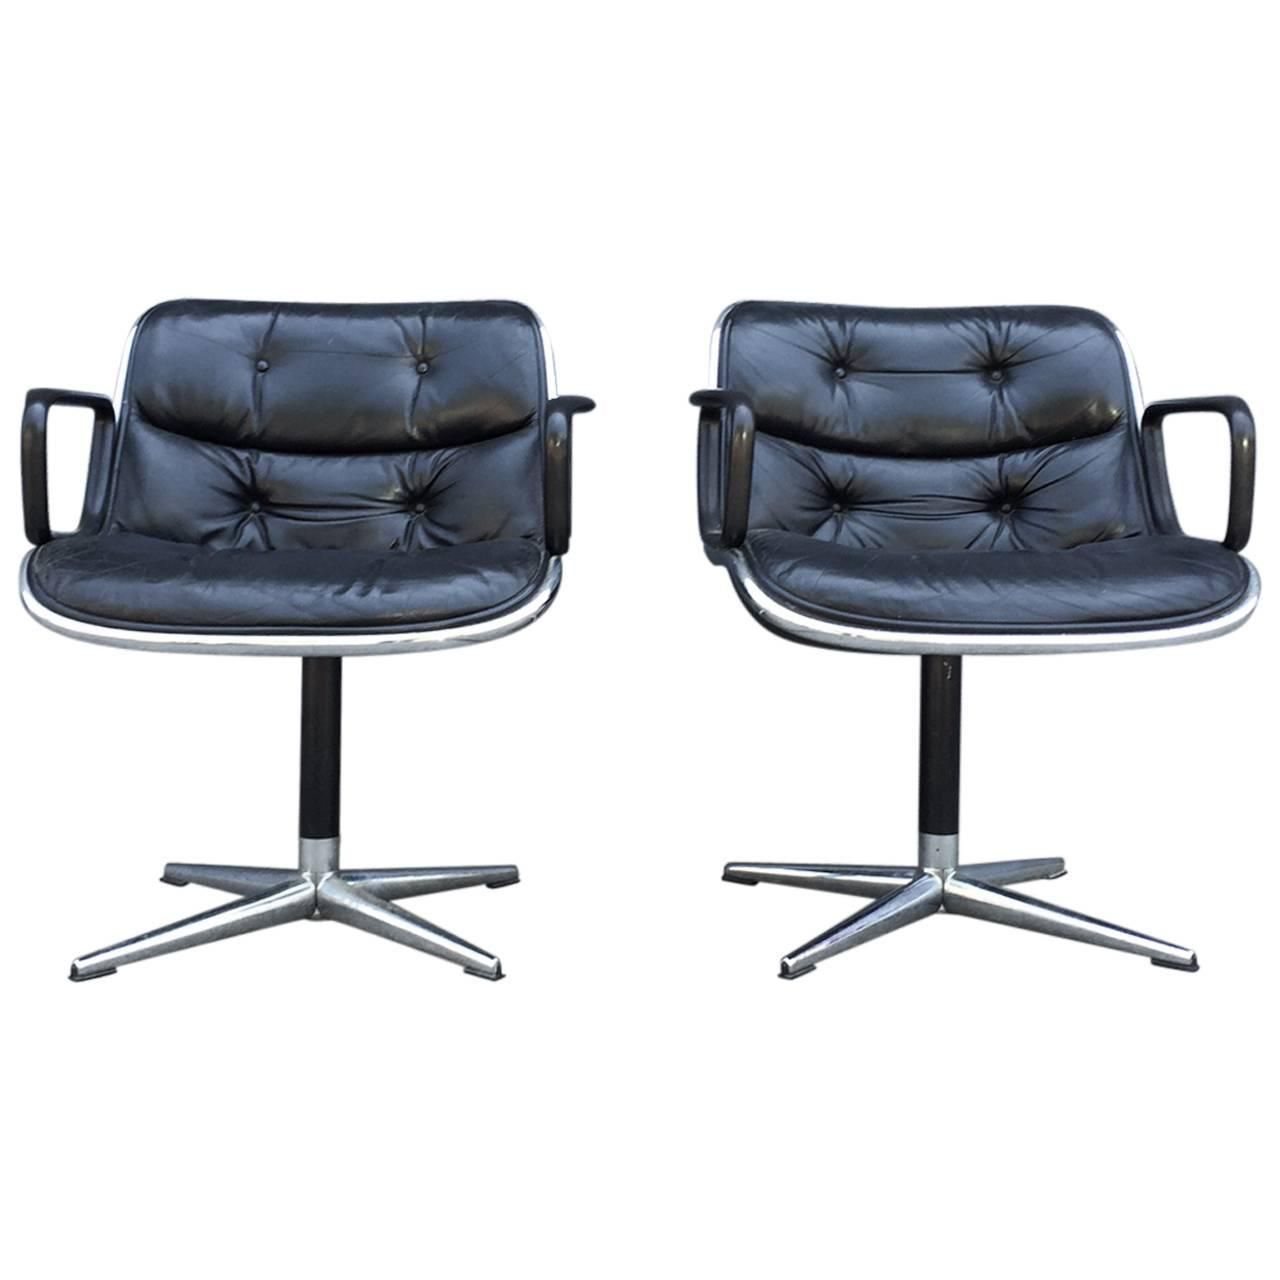 Fabulous Pair Of Early Charles Pollock For Knoll Accent Chairs Soho Uwap Interior Chair Design Uwaporg